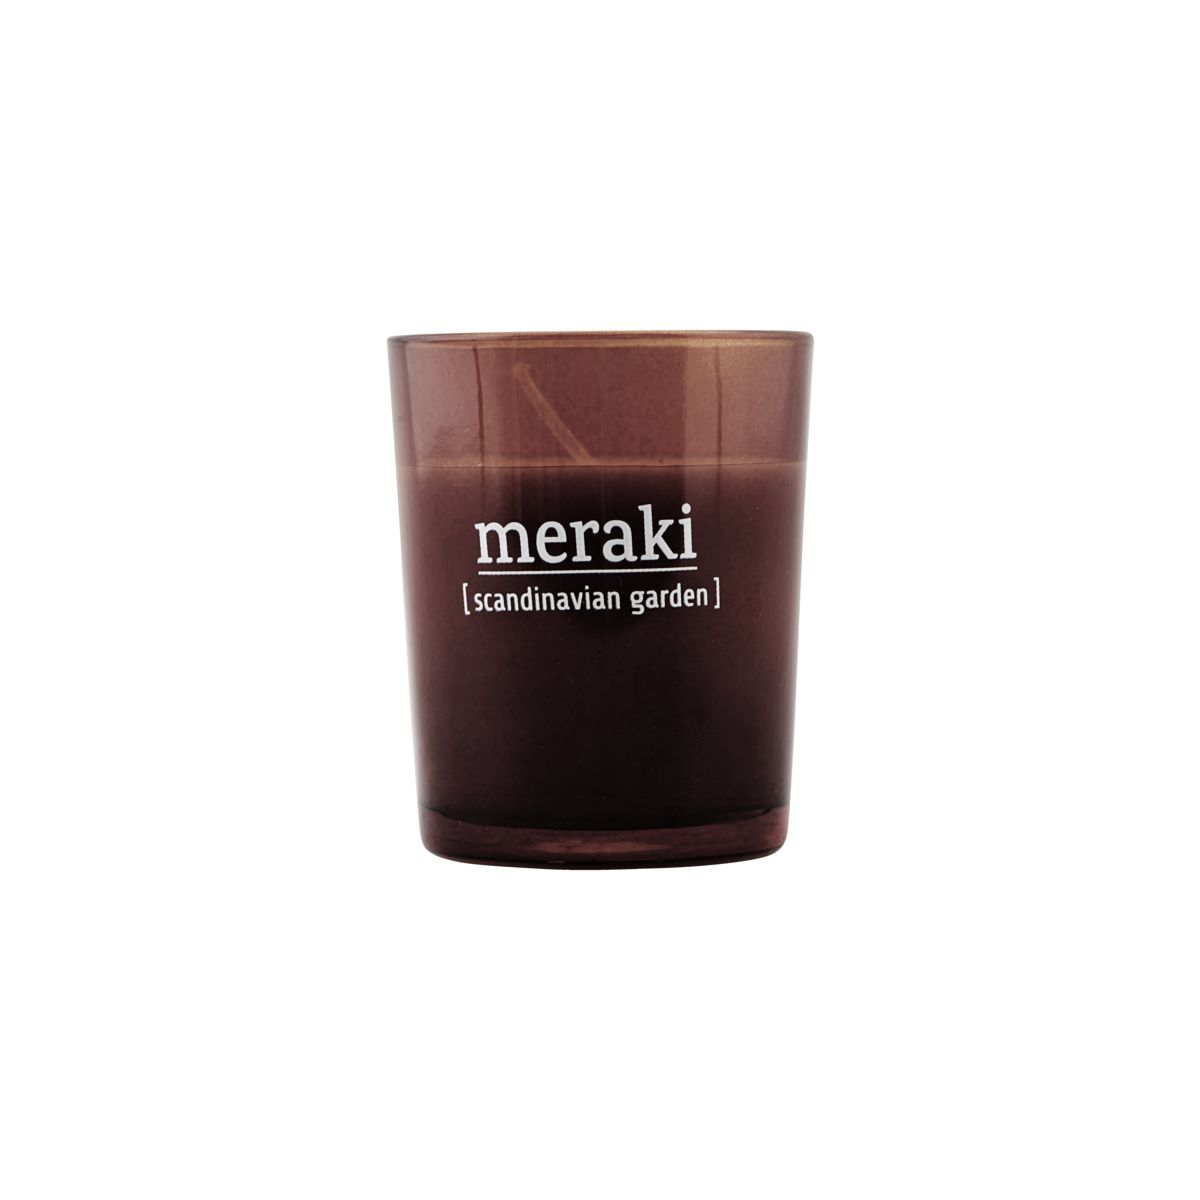 Mini Scandinavian Garden  Meraki Candle